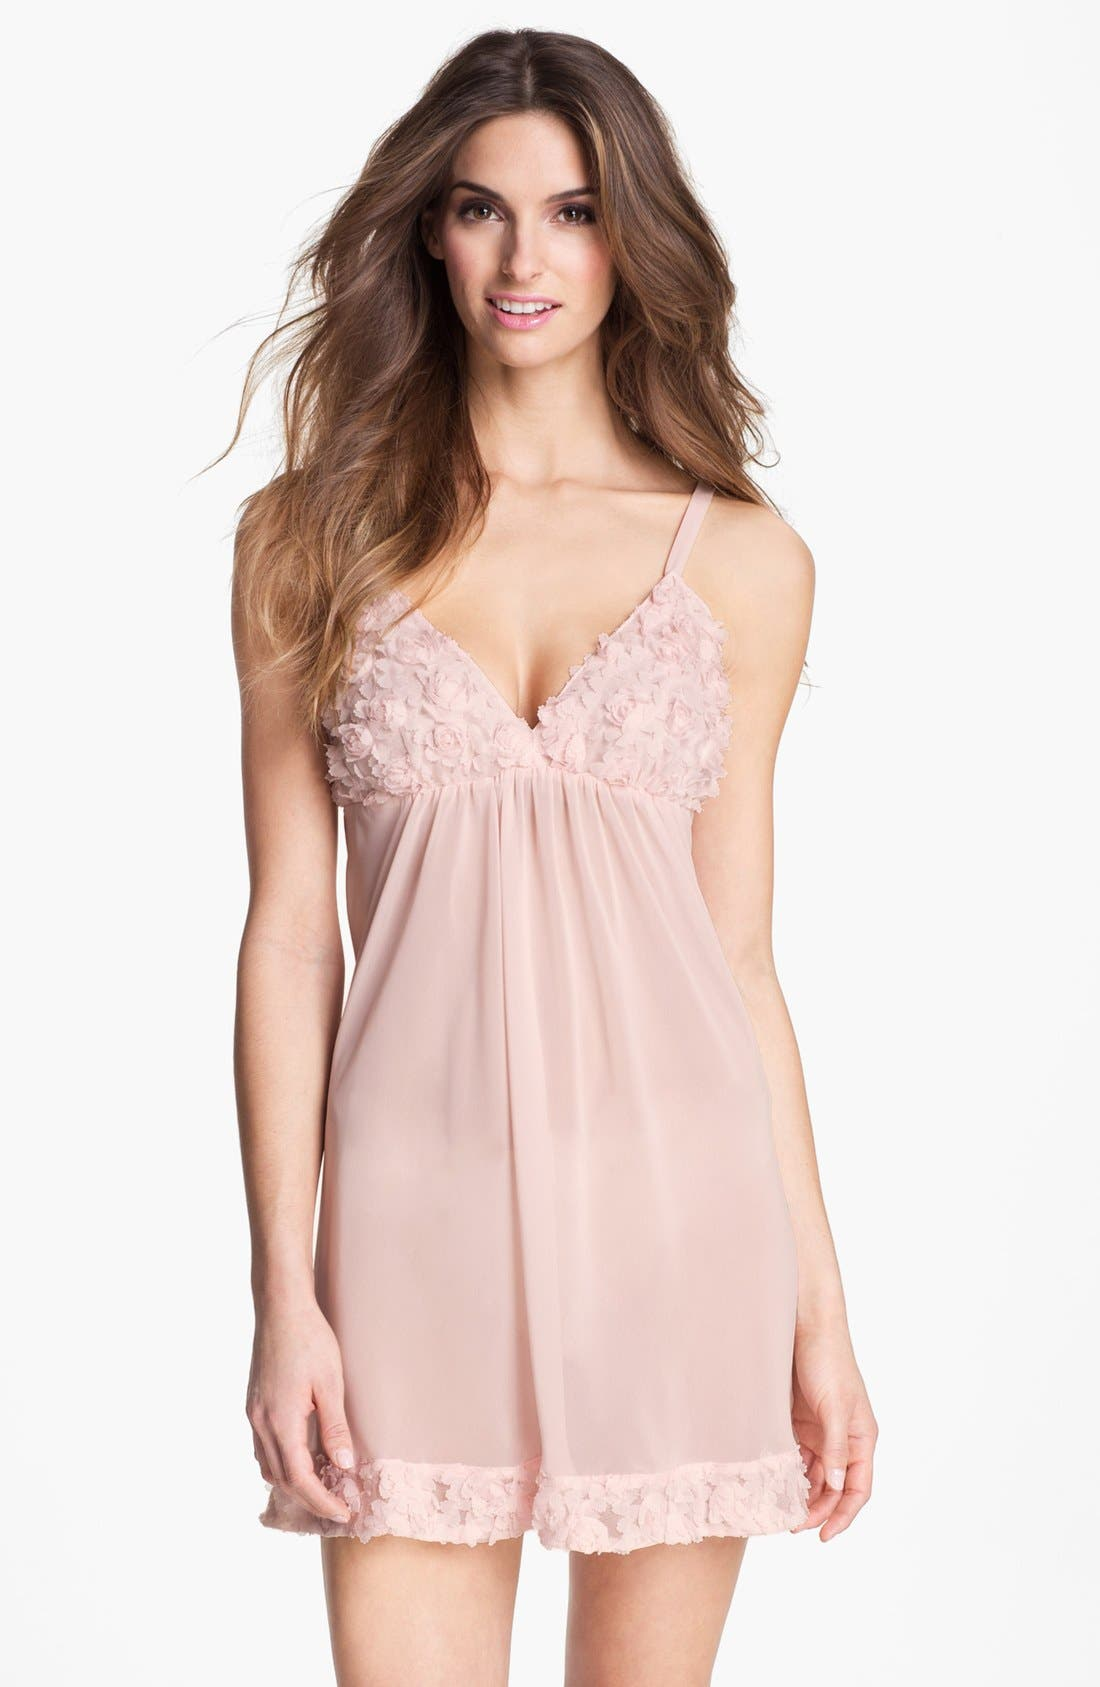 Alternate Image 1 Selected - Oscar de la Renta Sleepwear Rosette Trim Chemise